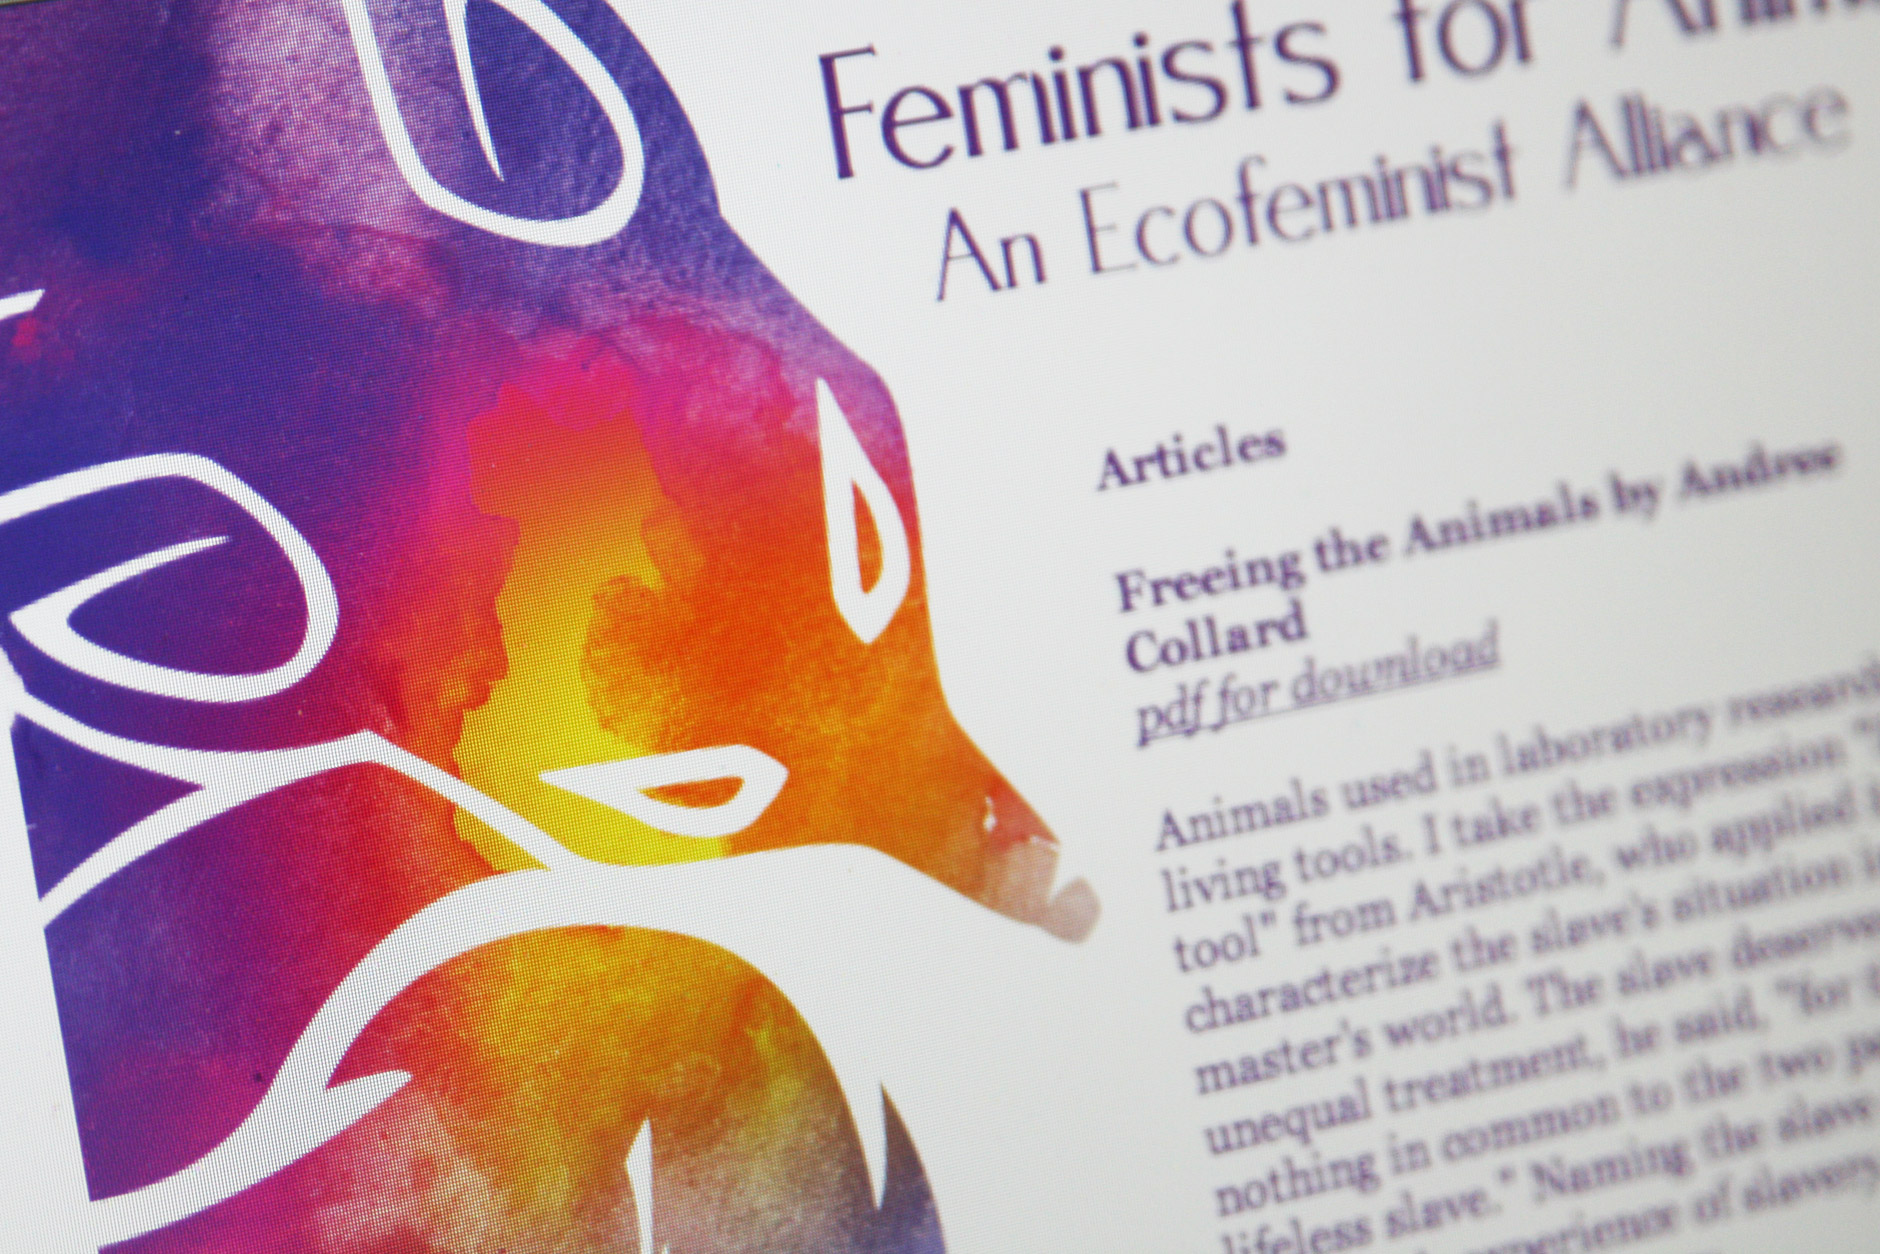 feminists-for-animal-rights_7798